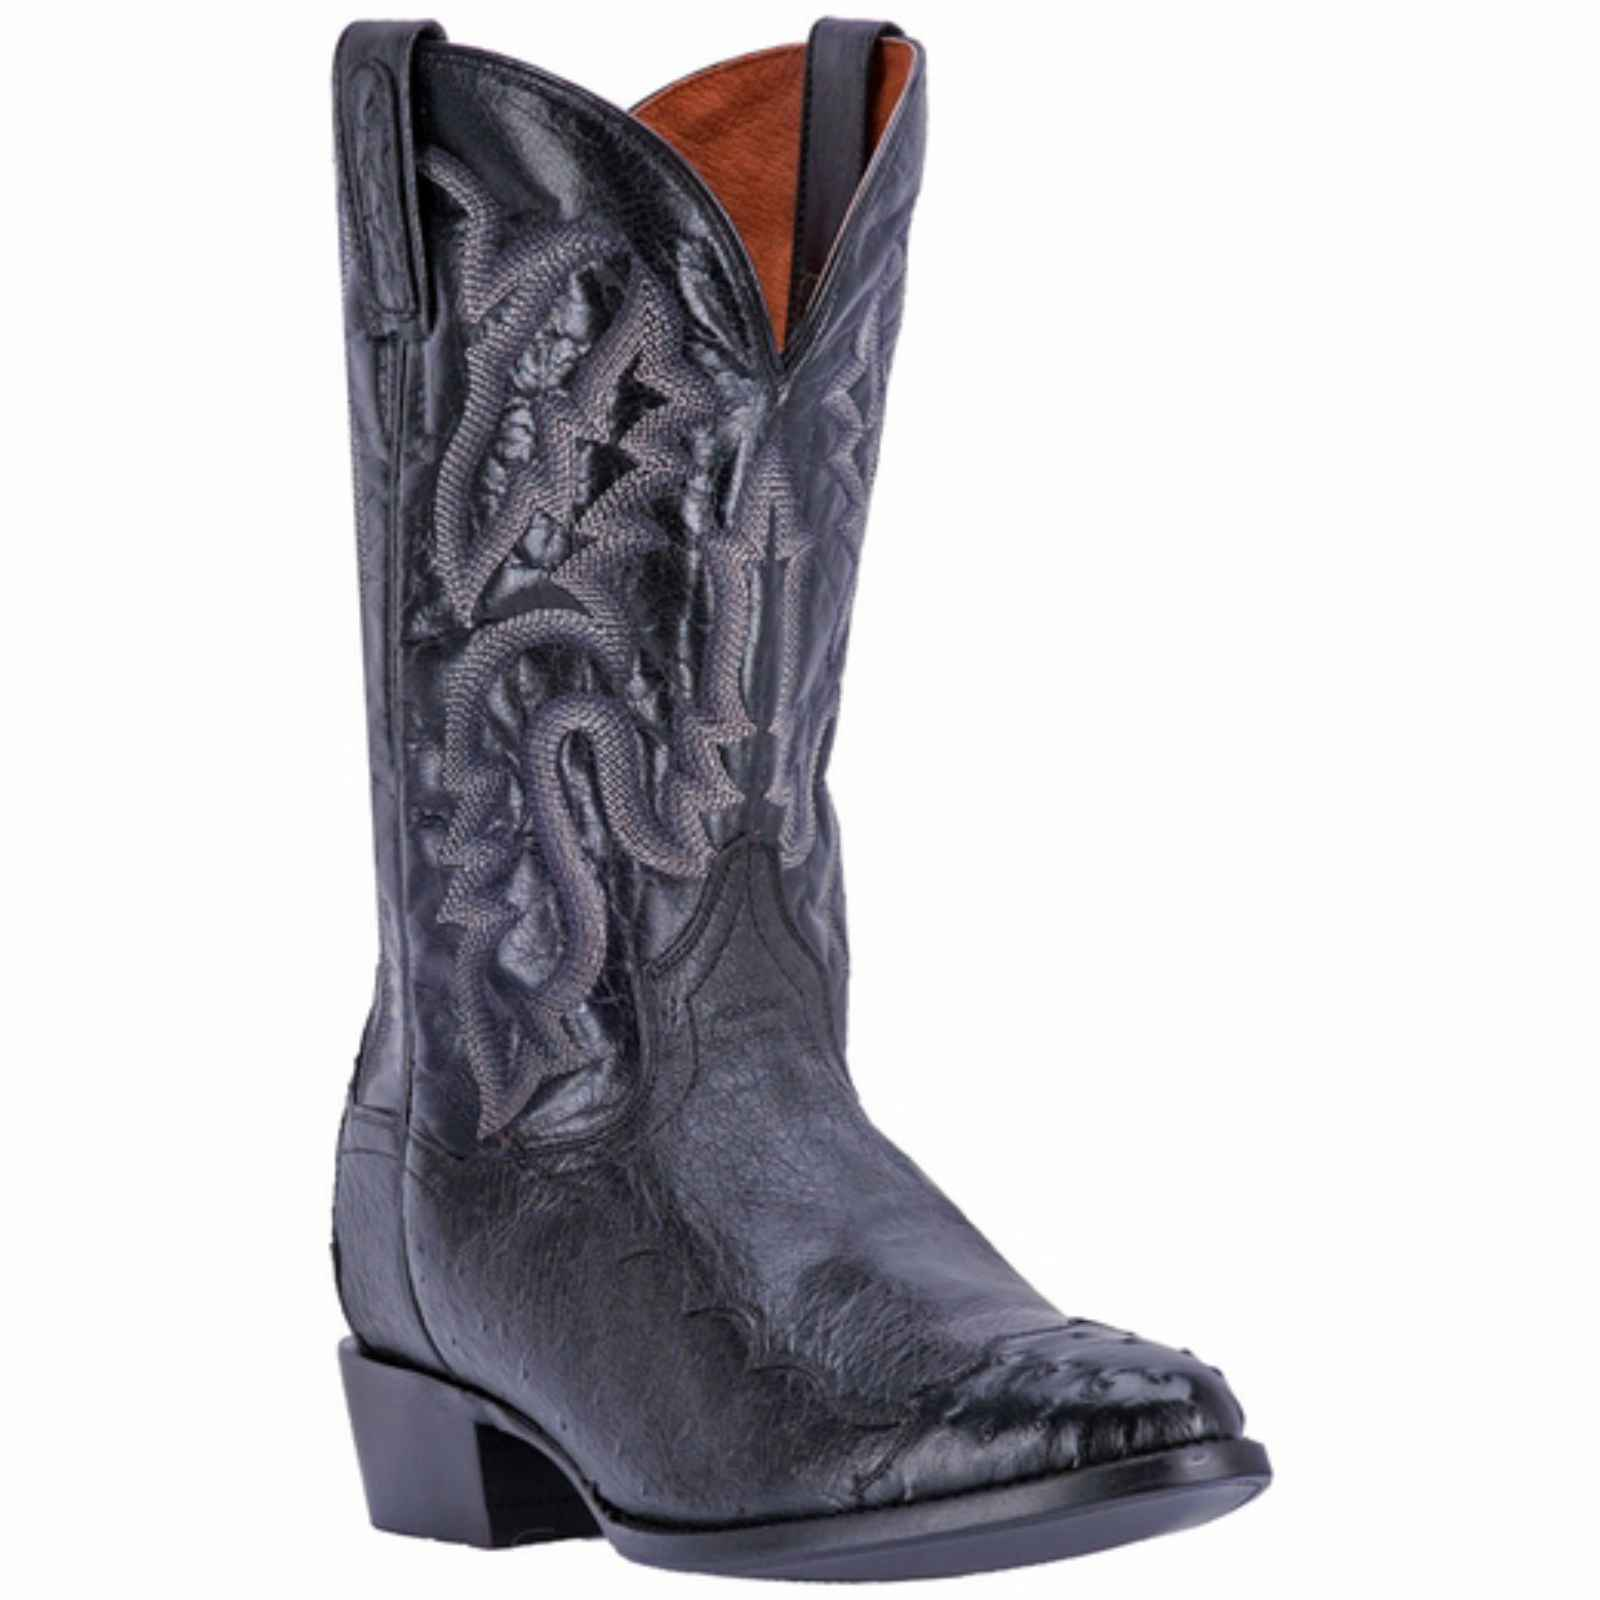 "Dan Post Men's 13"" Black Ostrich Senator Western Boot, DPP5203 by DAN POST"